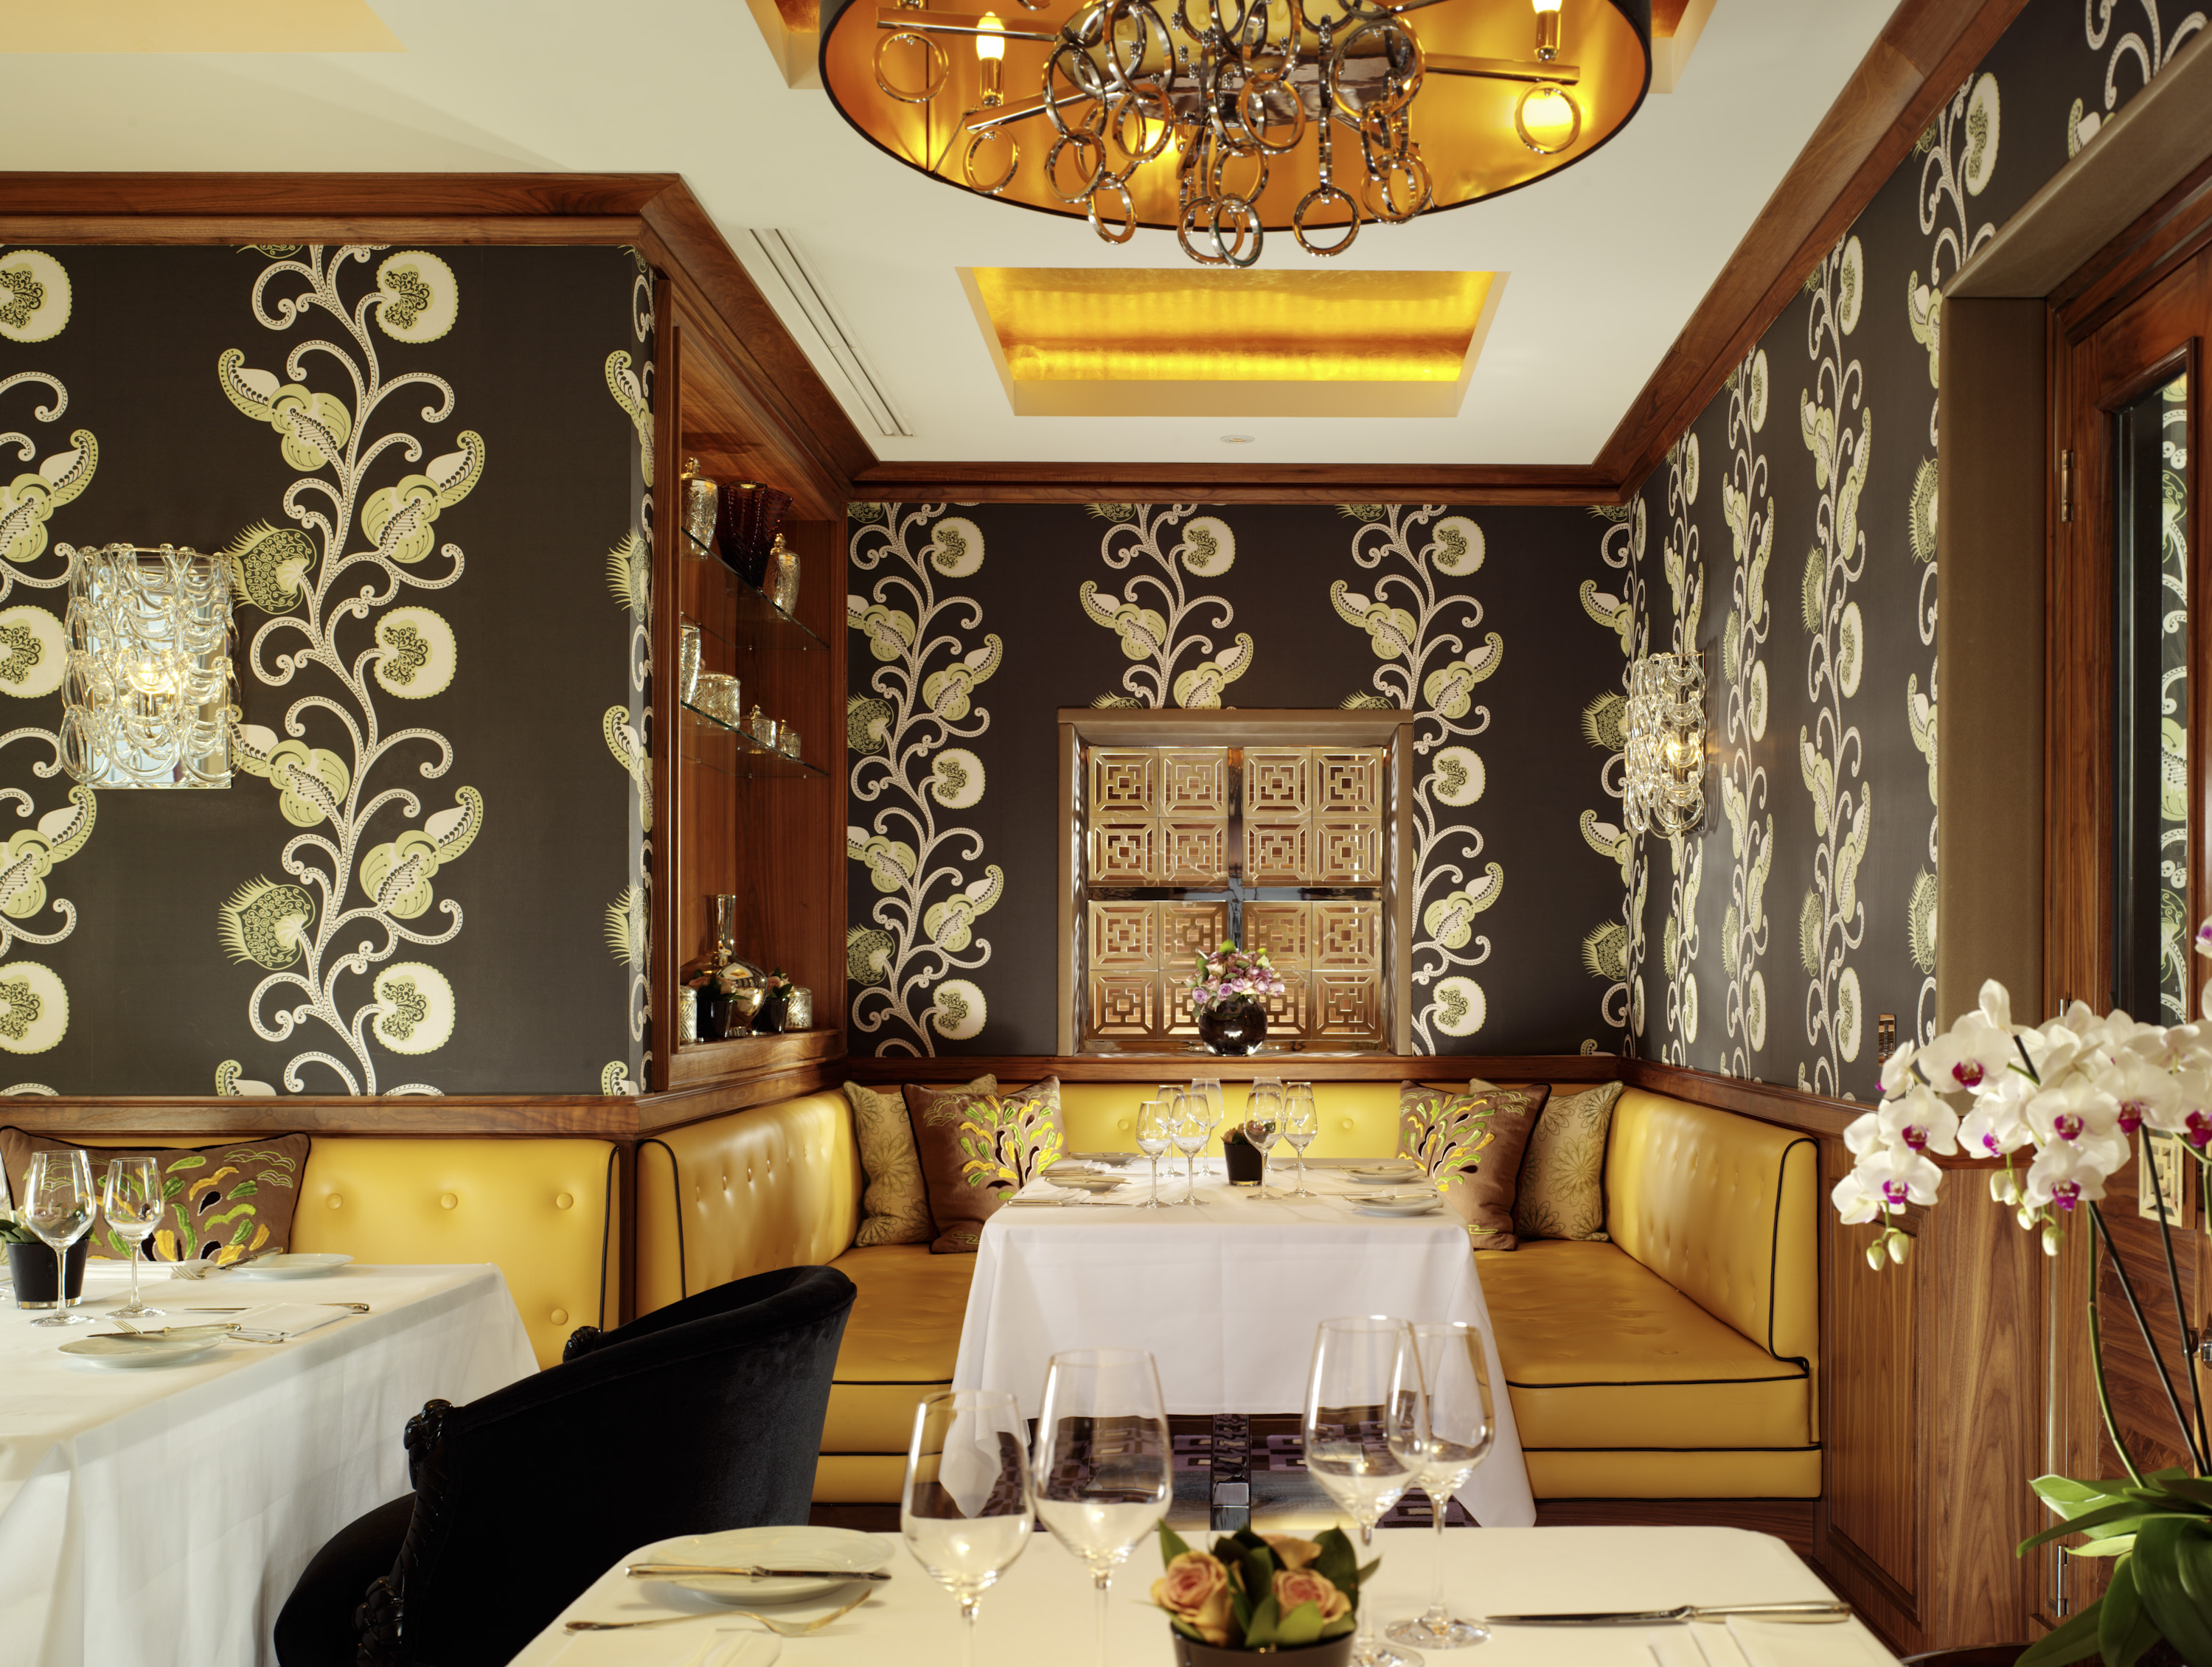 Reserve a table at Seven Park Place by William Drabble